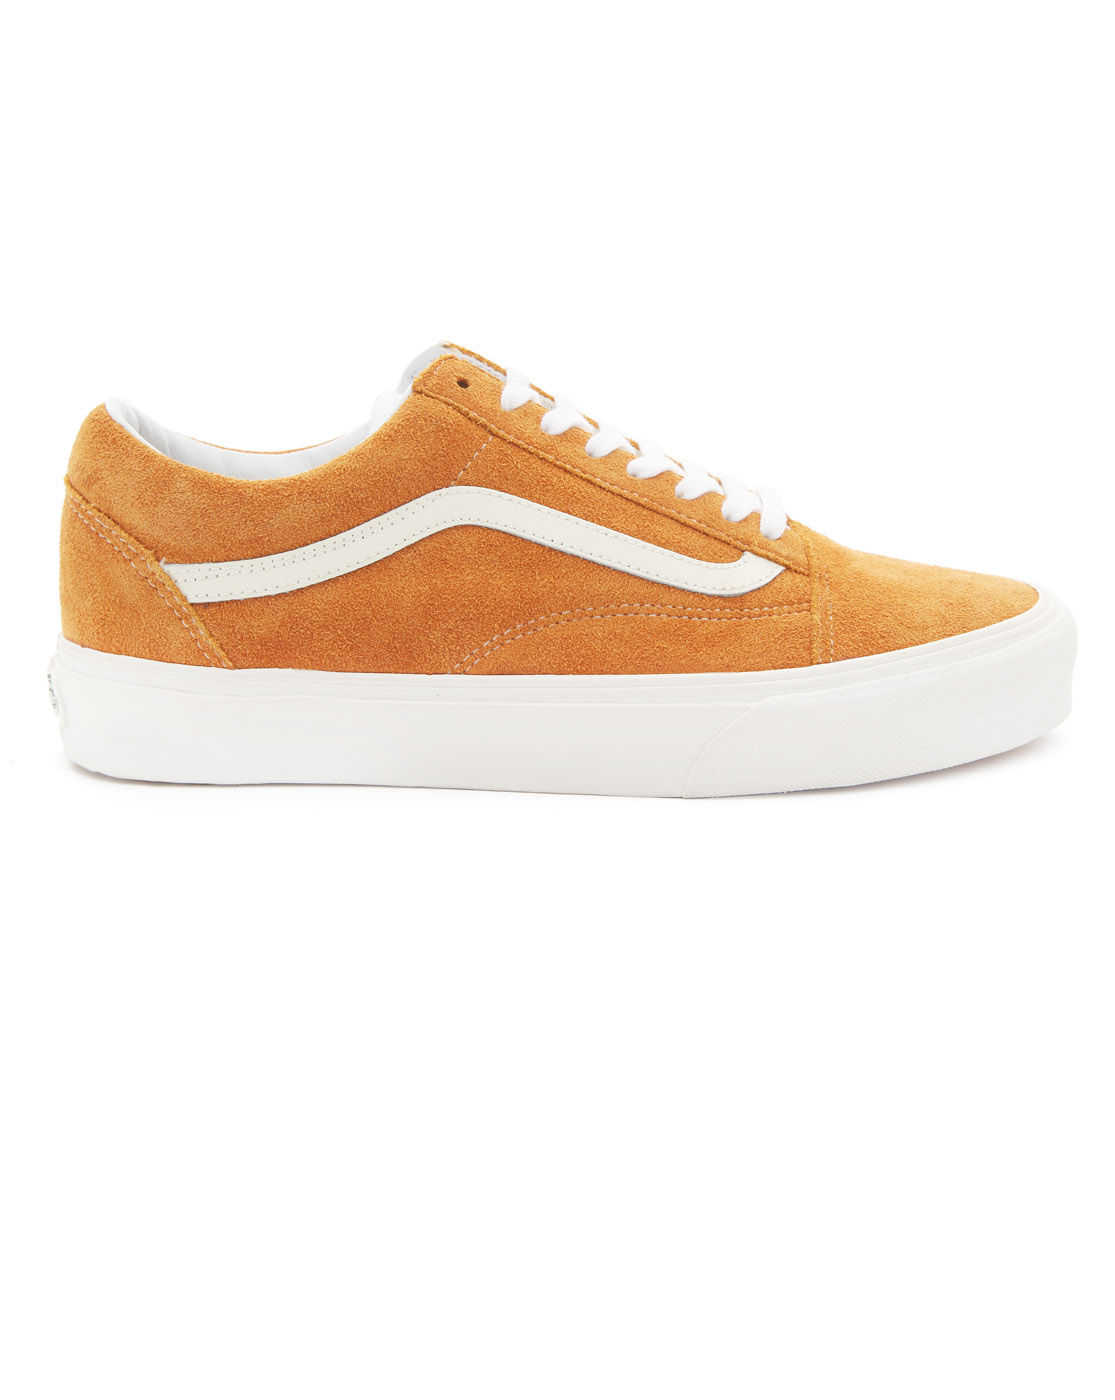 vans old skool camel suede in orange for men lyst. Black Bedroom Furniture Sets. Home Design Ideas